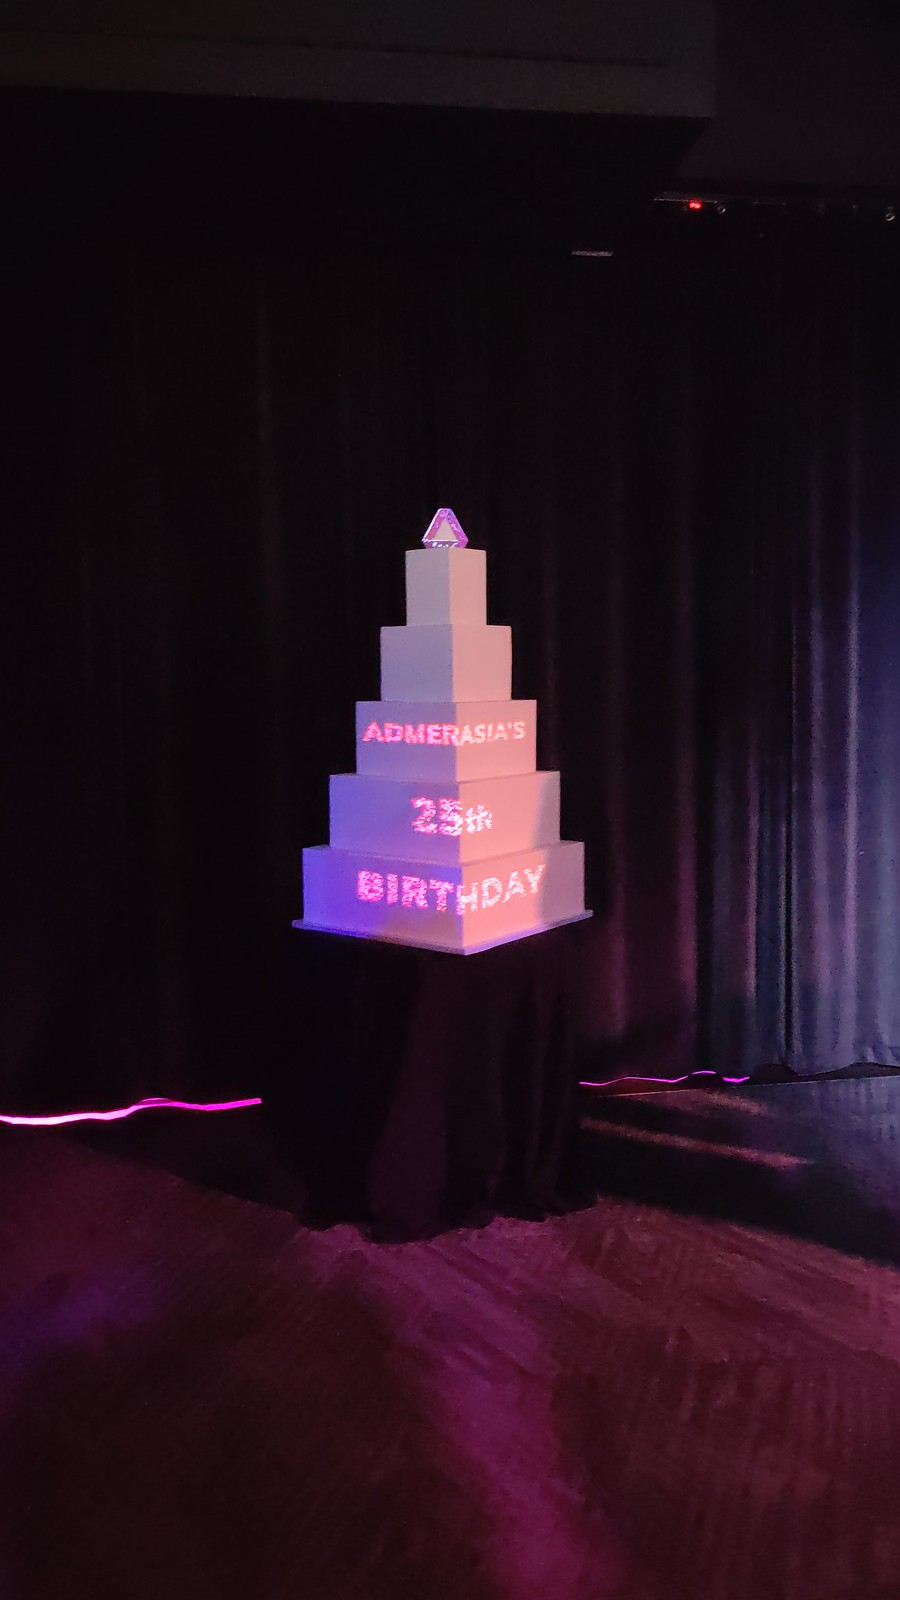 ADMERASIA's 25th B-day [R]Evolution_Projected Cake